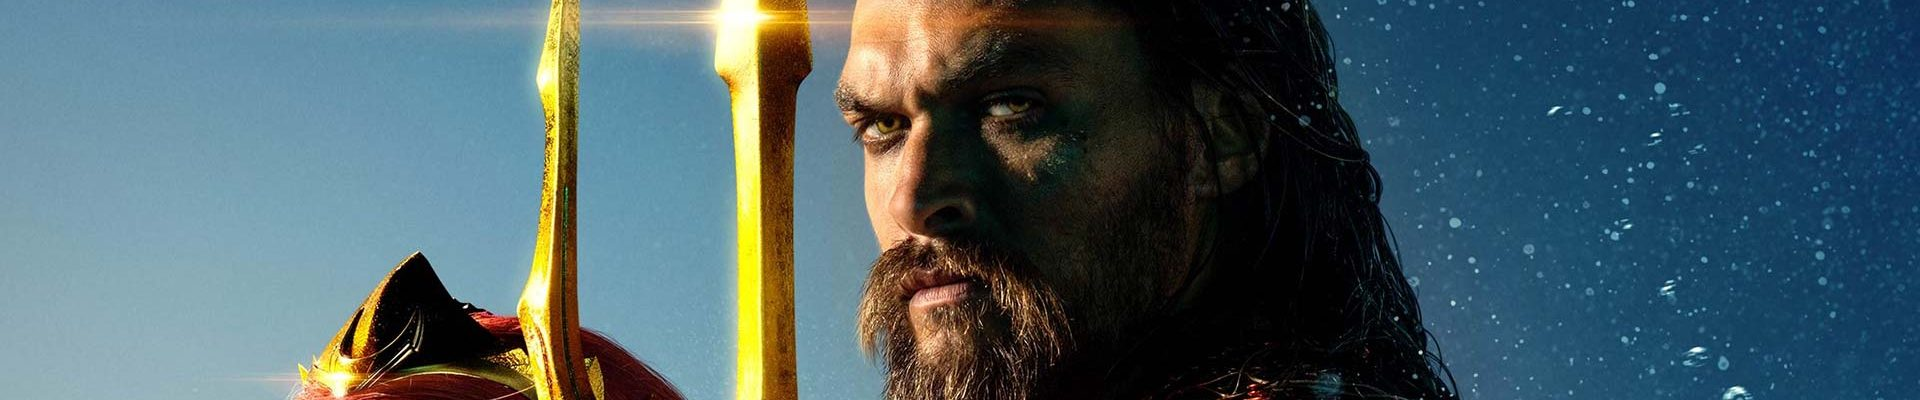 Aquaman Movie Tanweer Press Release